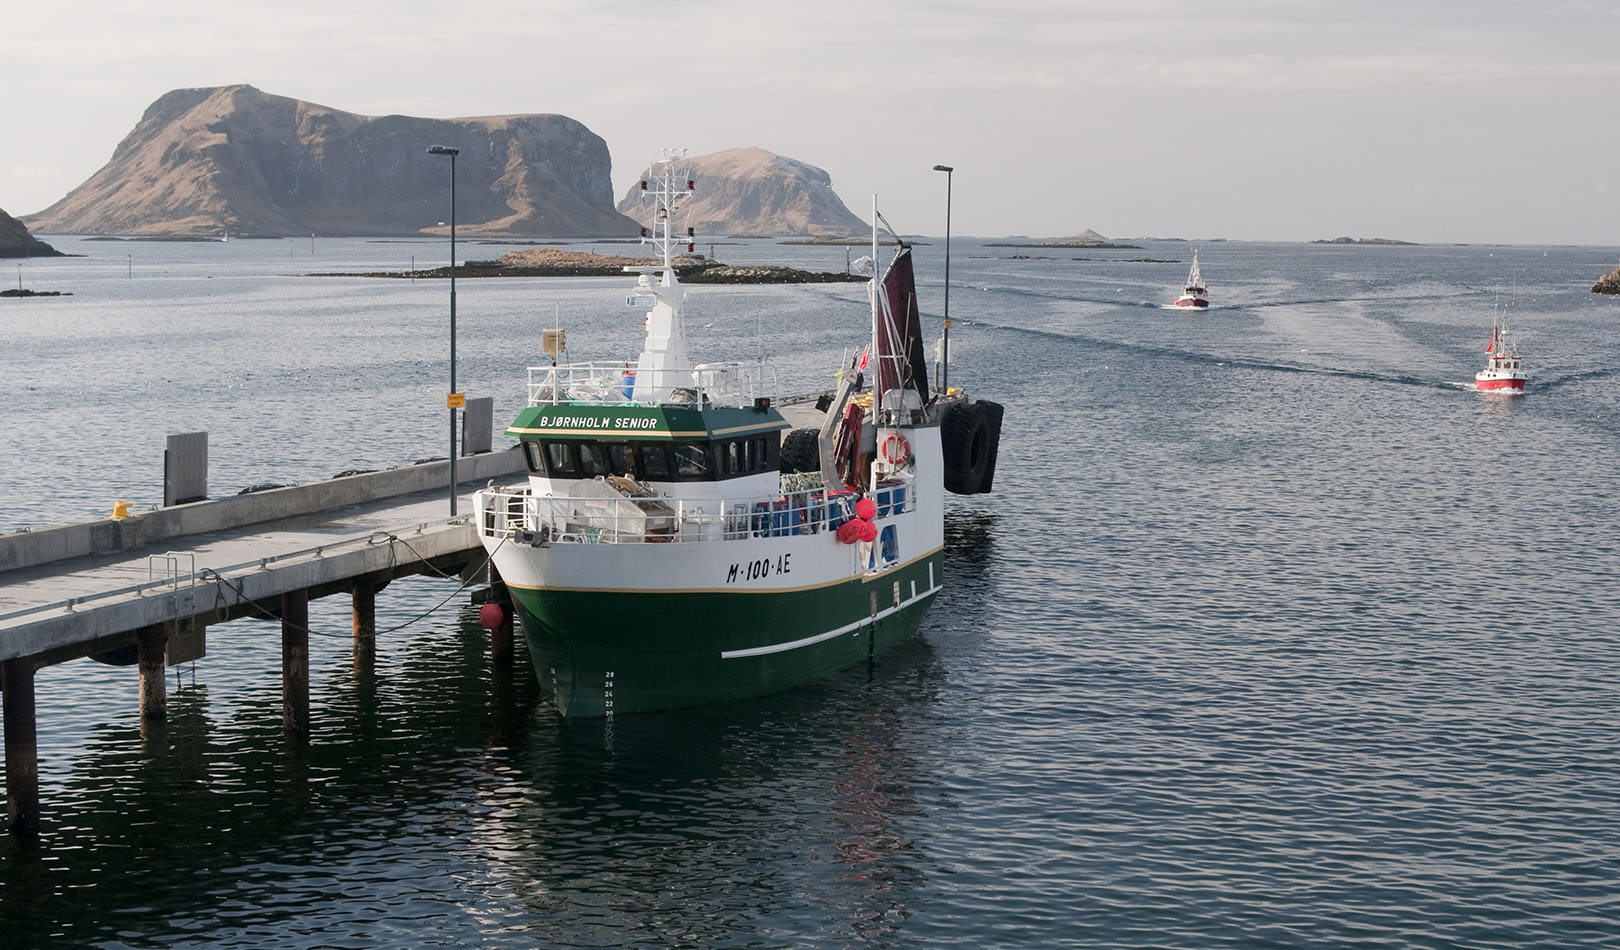 Fishing boat in Lofoten.